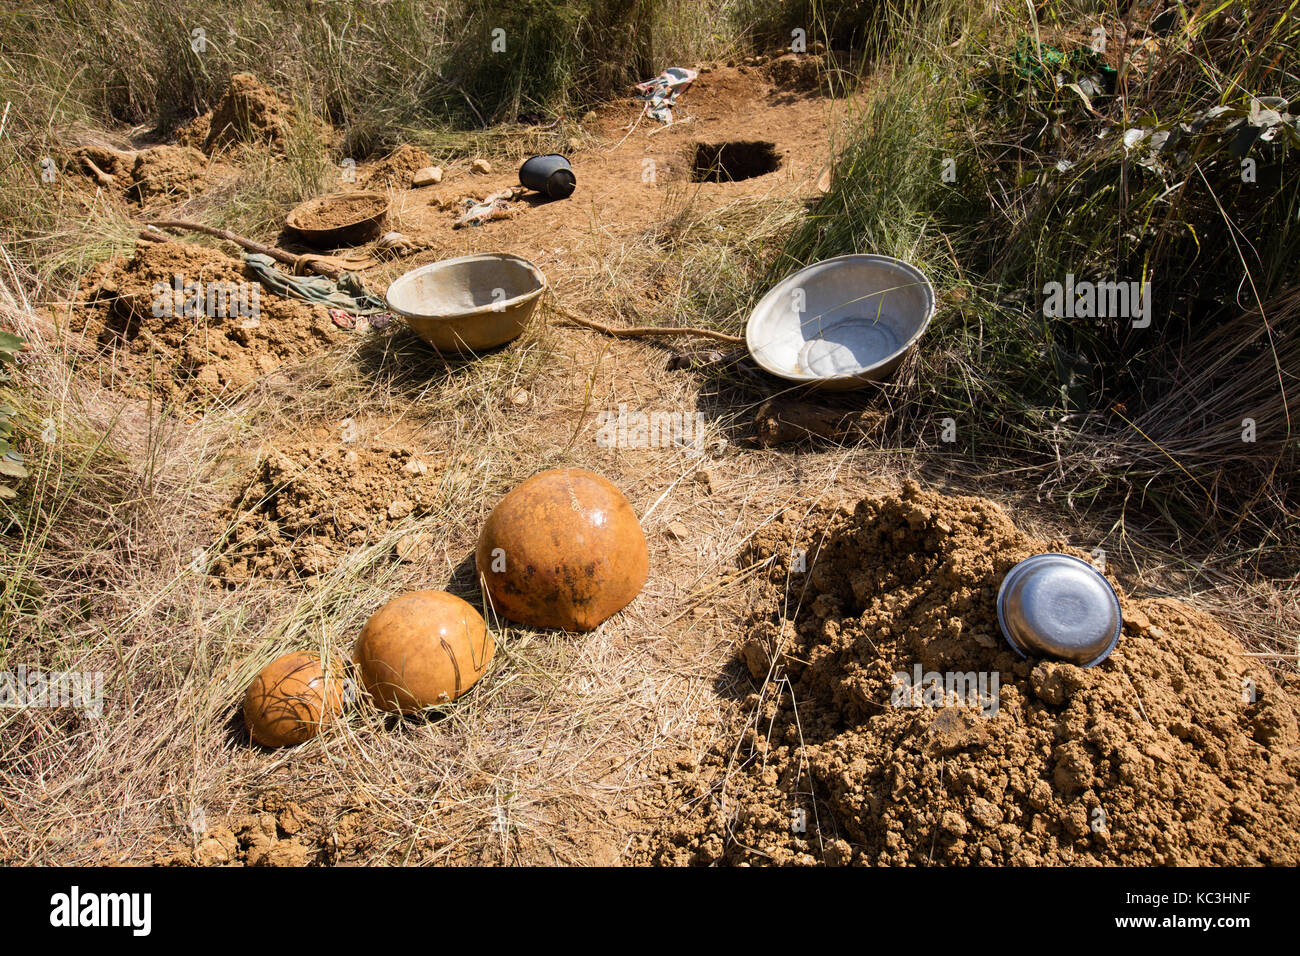 Tools utilized by gold digger, Burkina faso - Stock Image